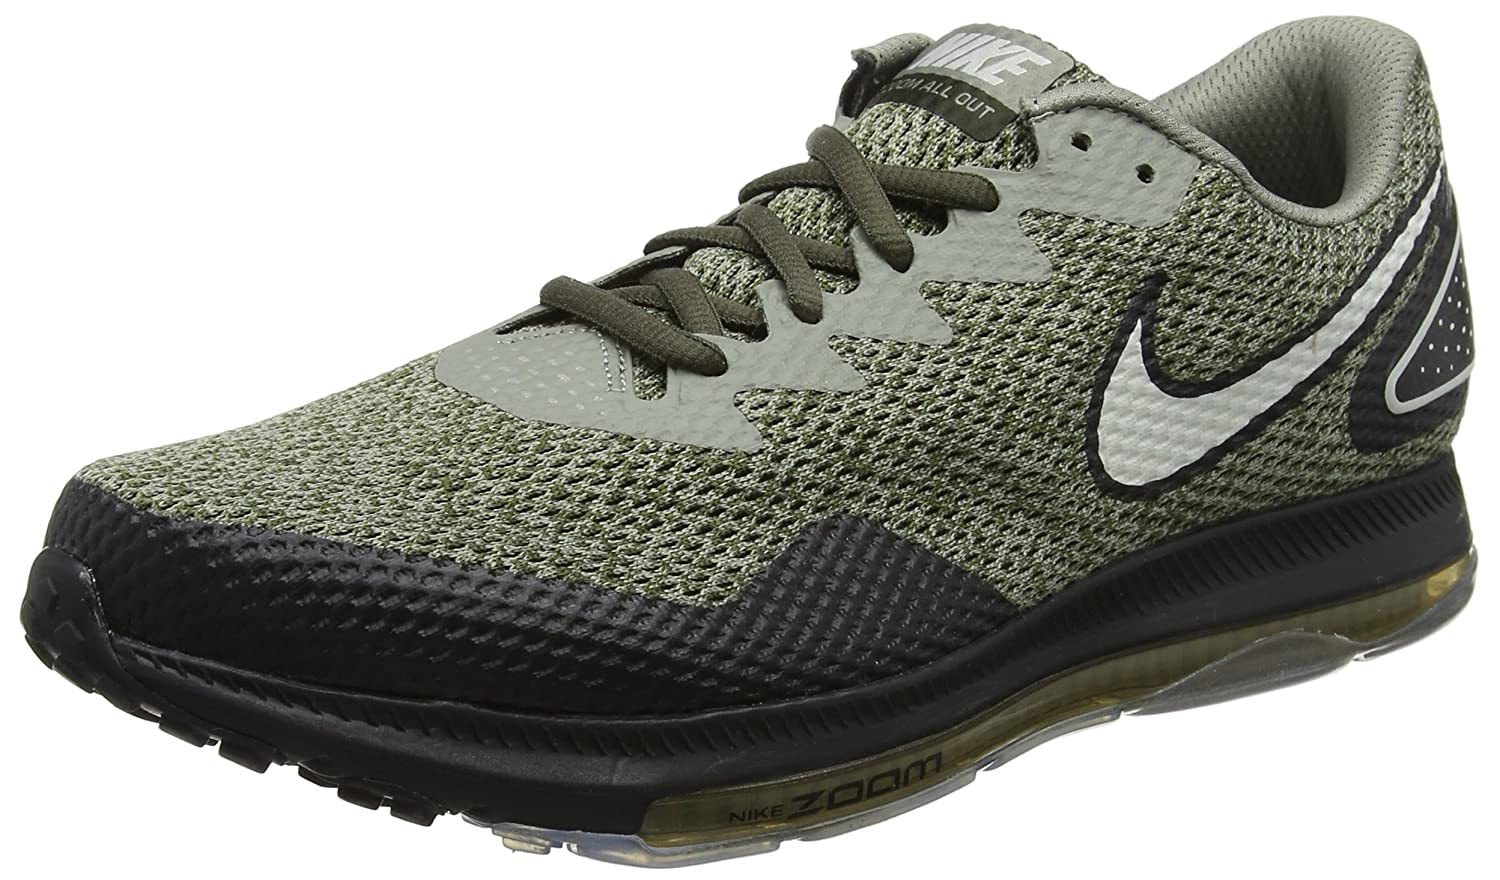 Nike Zoom All out Low 2, Zapatillas de Gimnasia para Hombre 44 EU|Gris (Cargo Khaki/Lt Bone/Black 300)